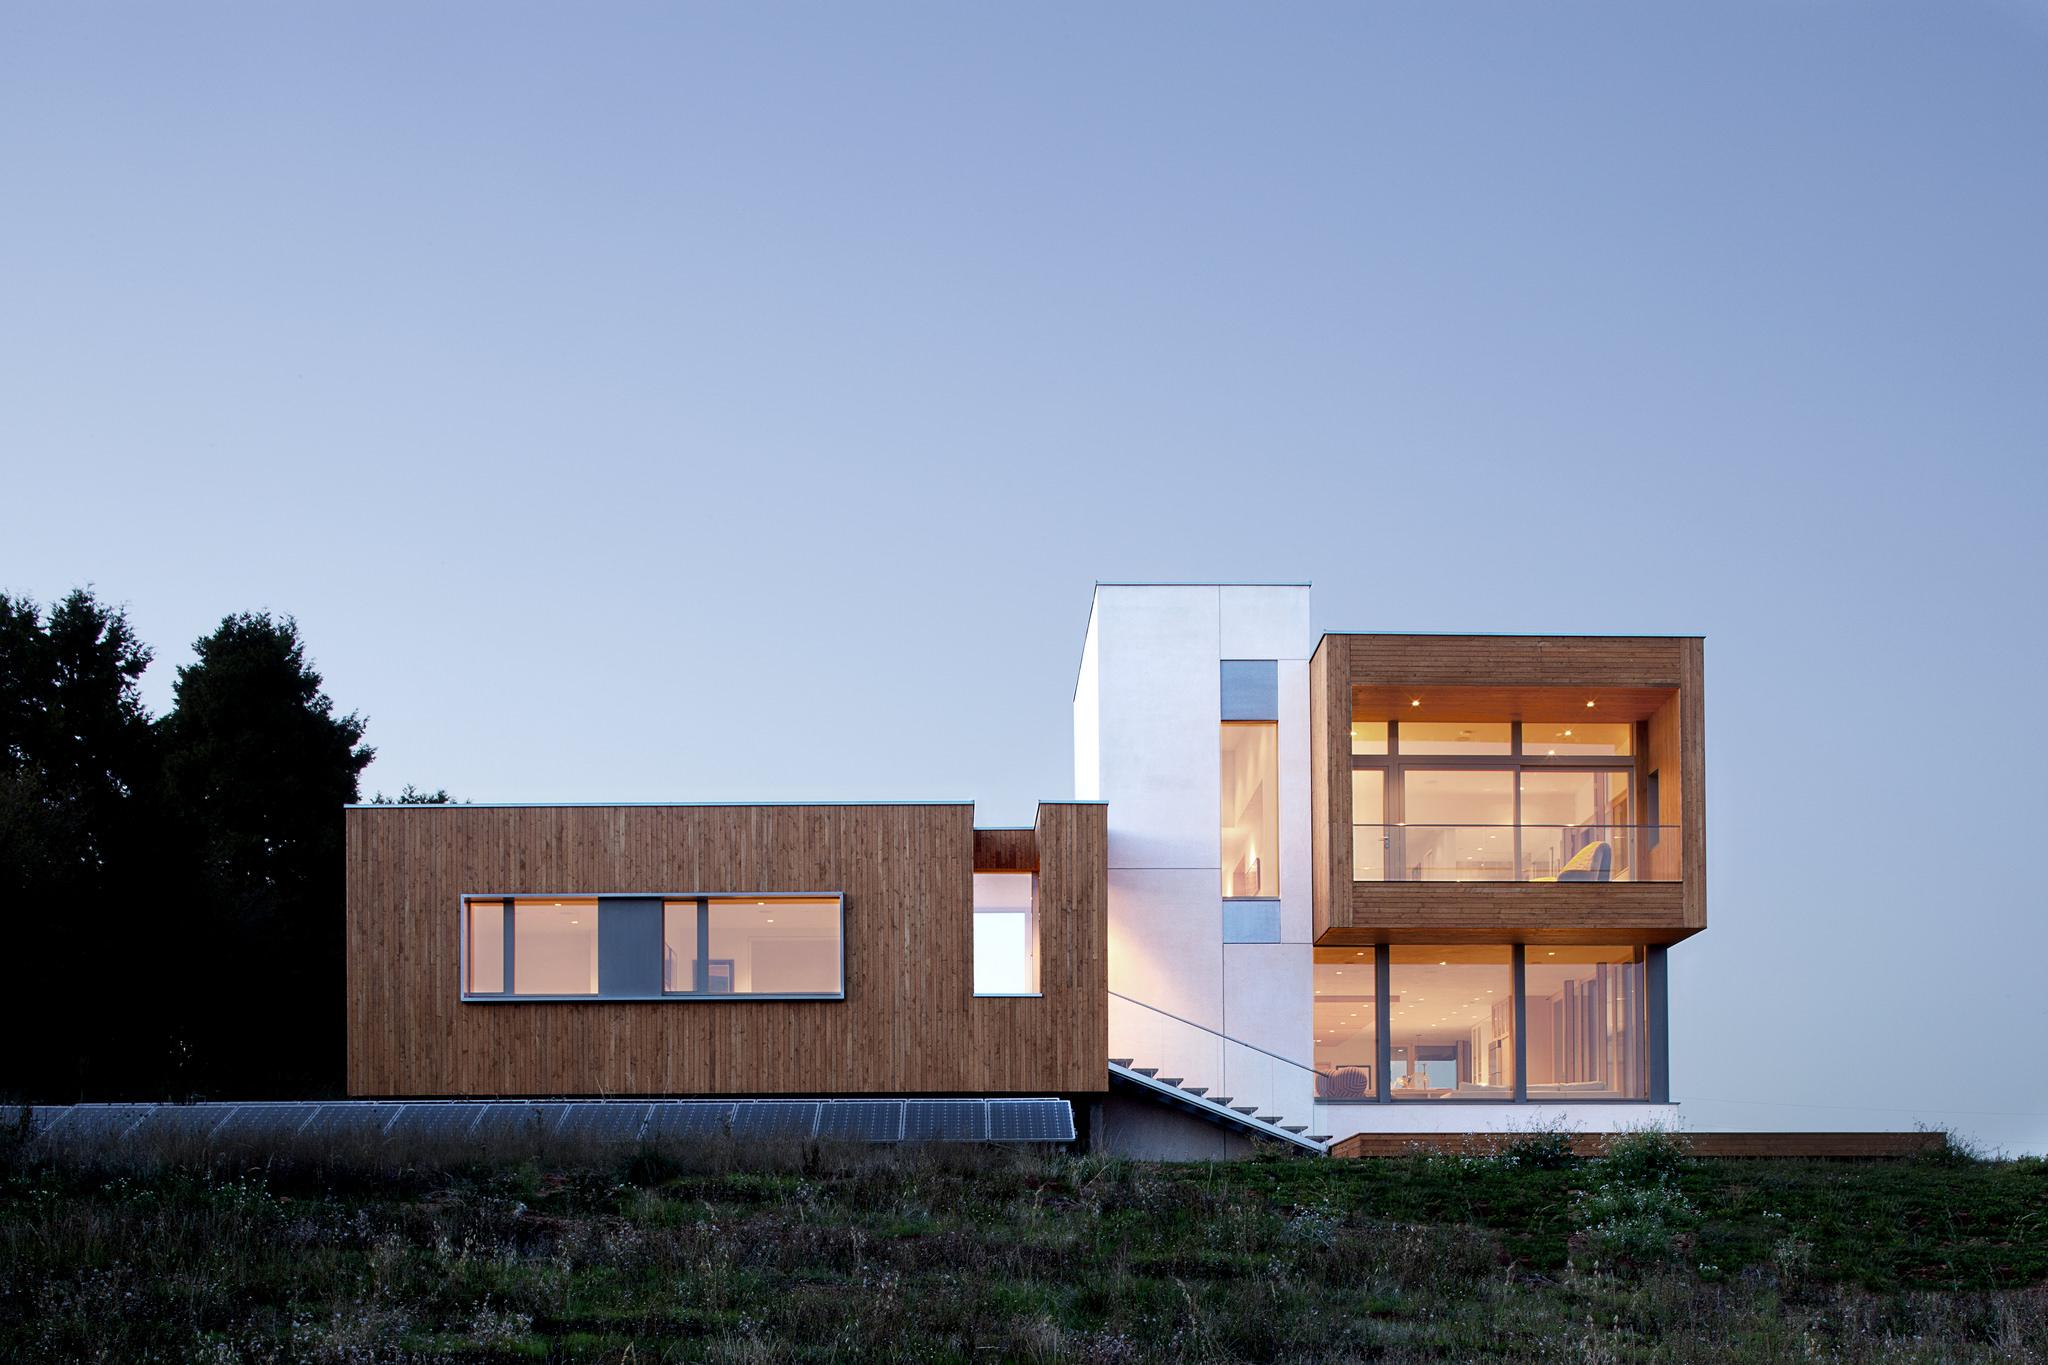 Passive house construction: Everything you need to know